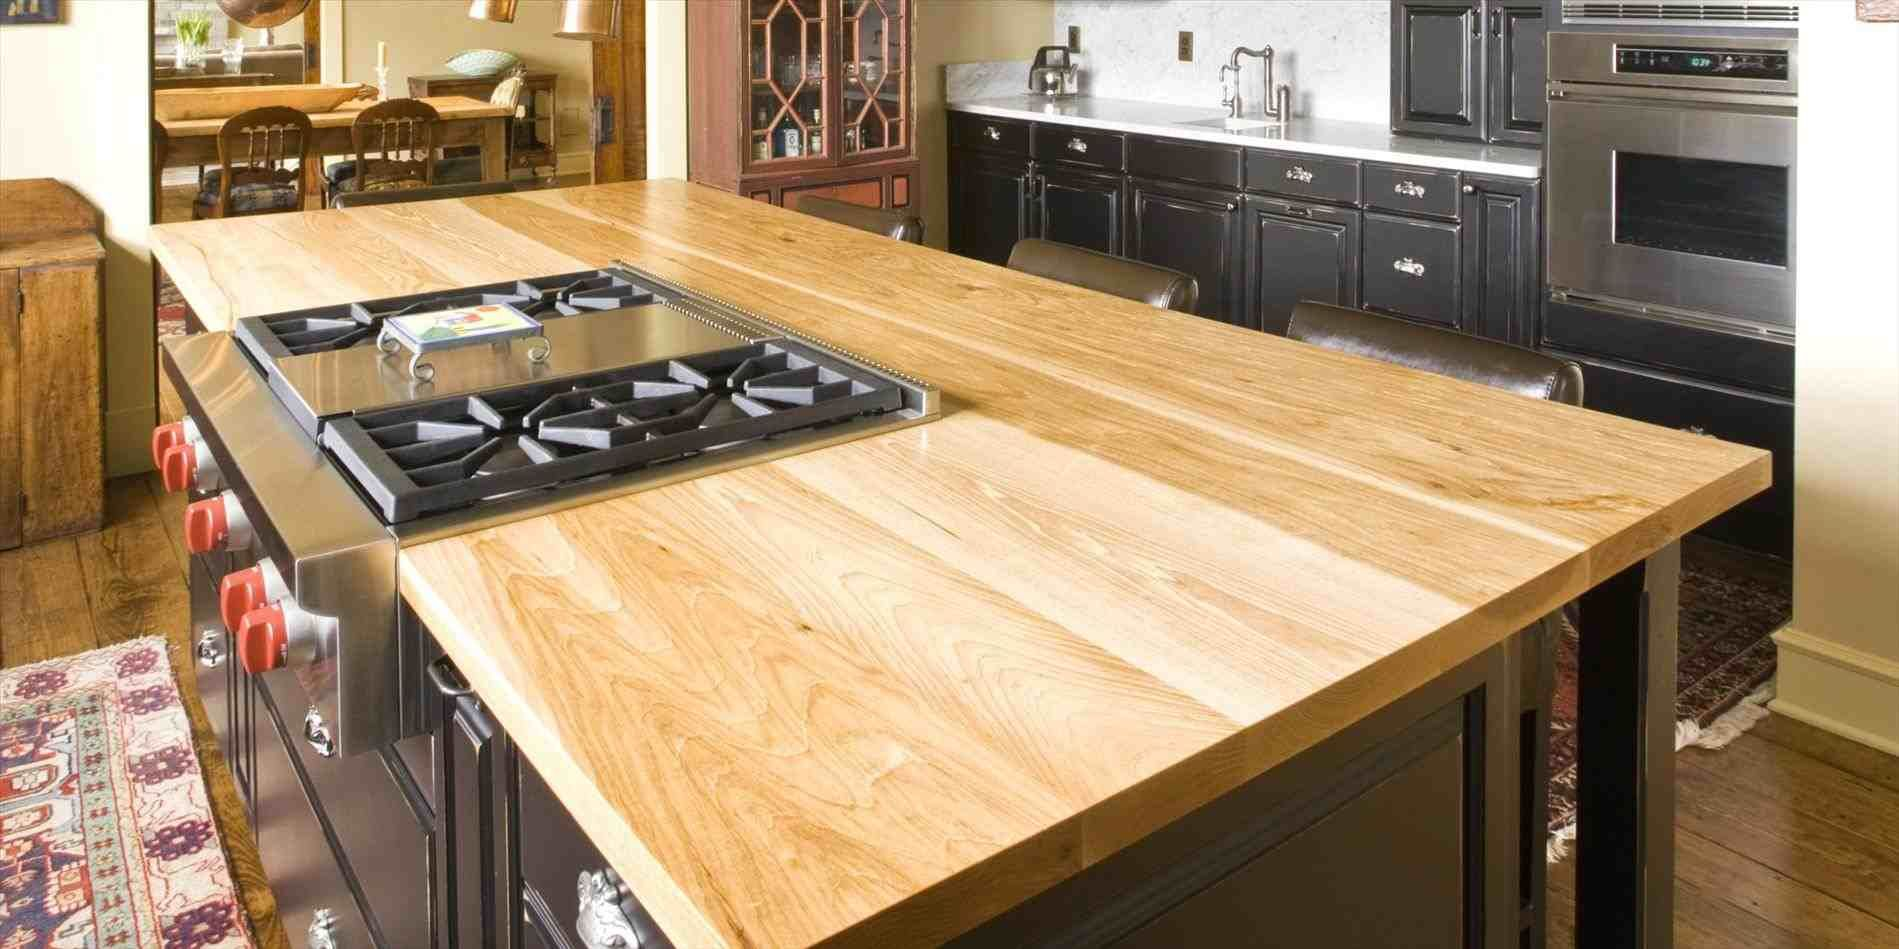 Diy Kitchen Island With Cooktop Kitchen Island With Cooktop